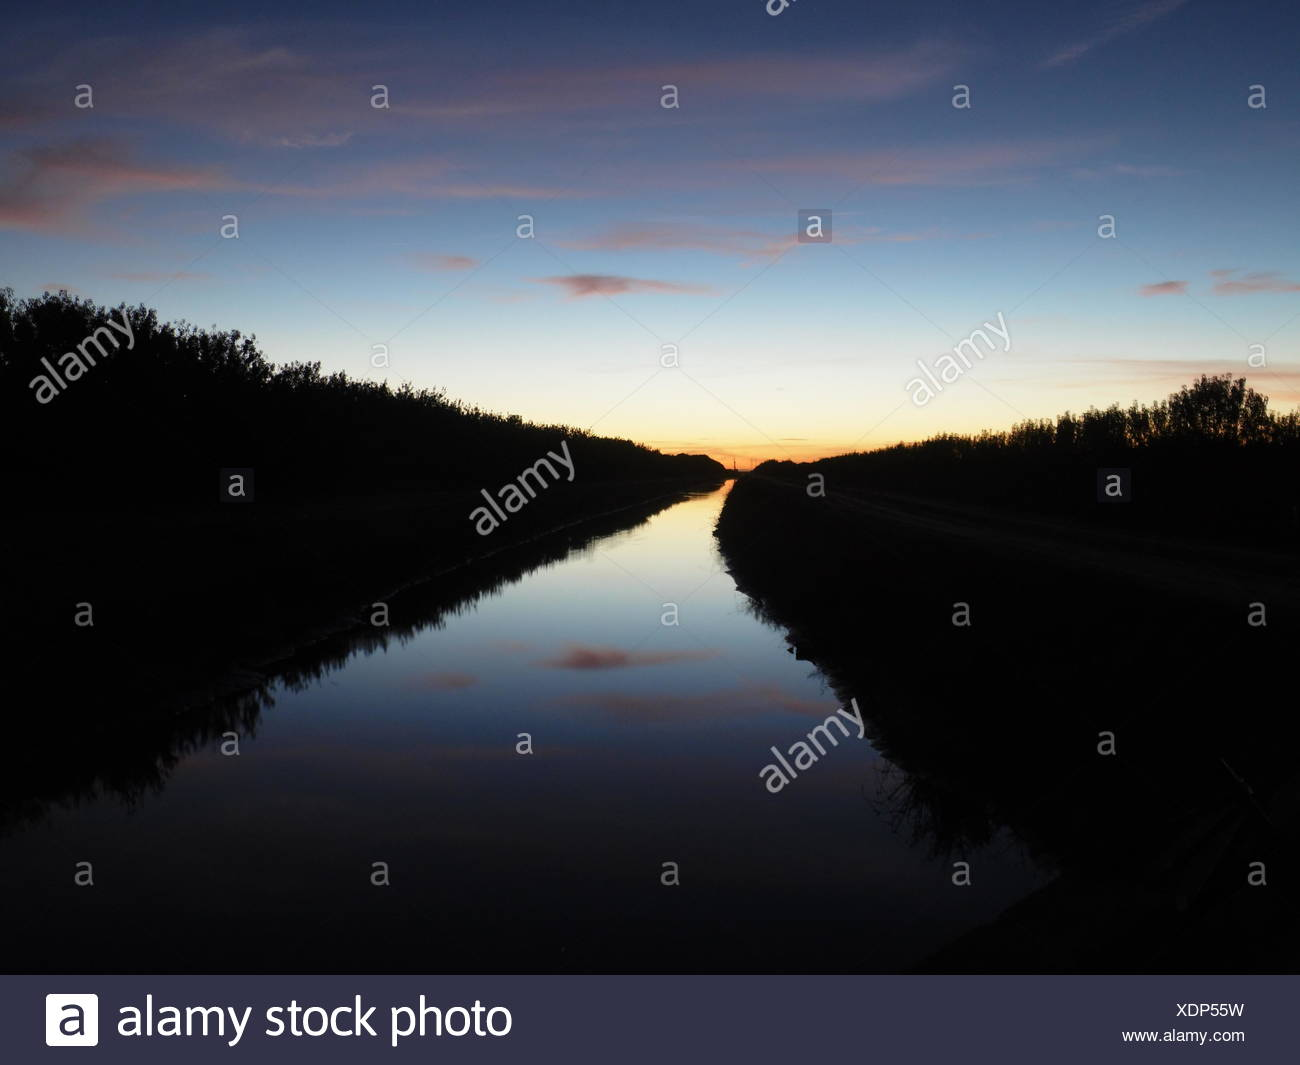 River Passing Through A Forest At Sunset - Stock Image